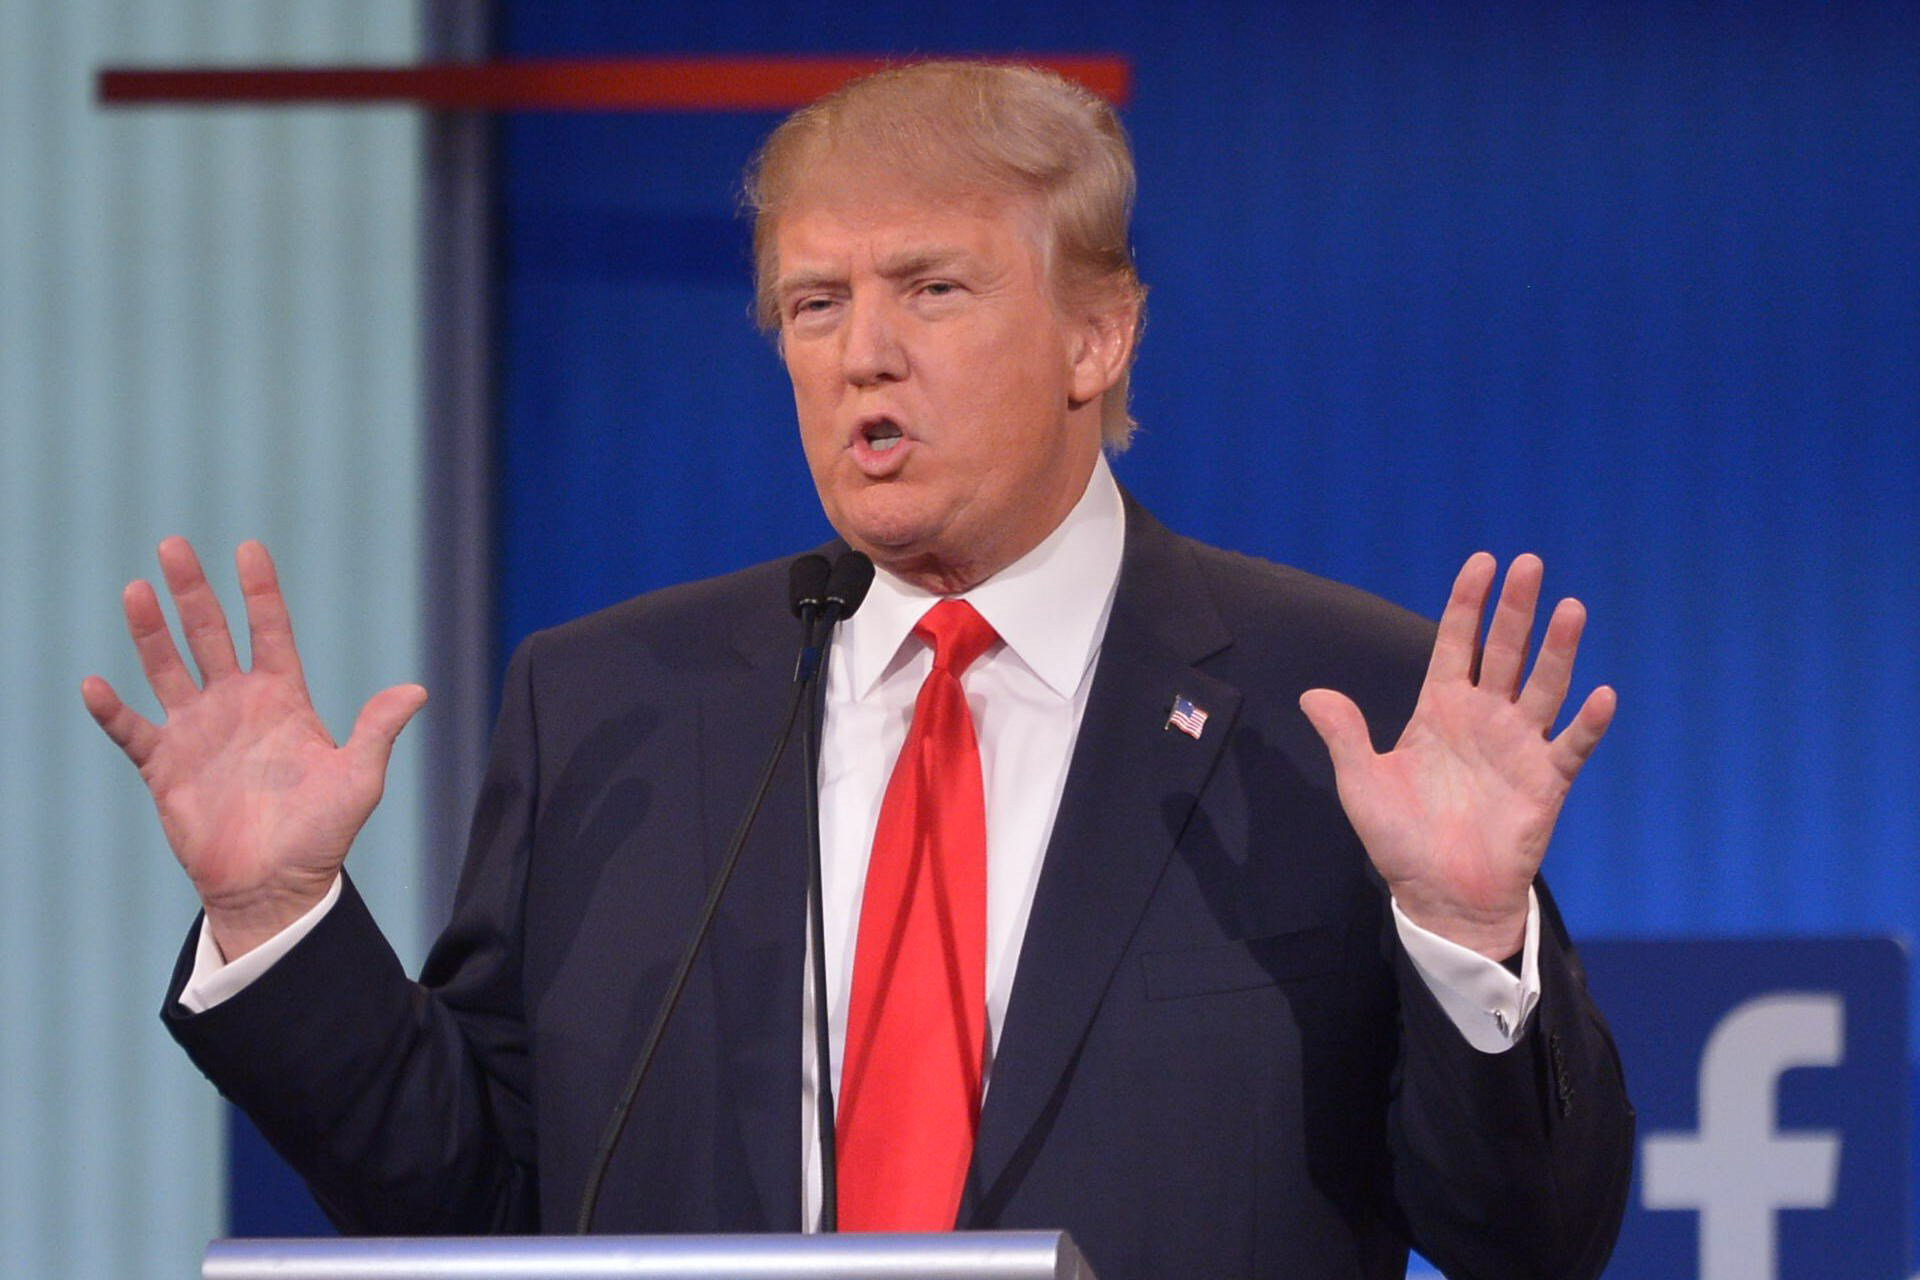 Republican presidential hopeful Donald Trump speaks during the prime time Republican presidential primary debate on August 6, 2015 in Cleveland.